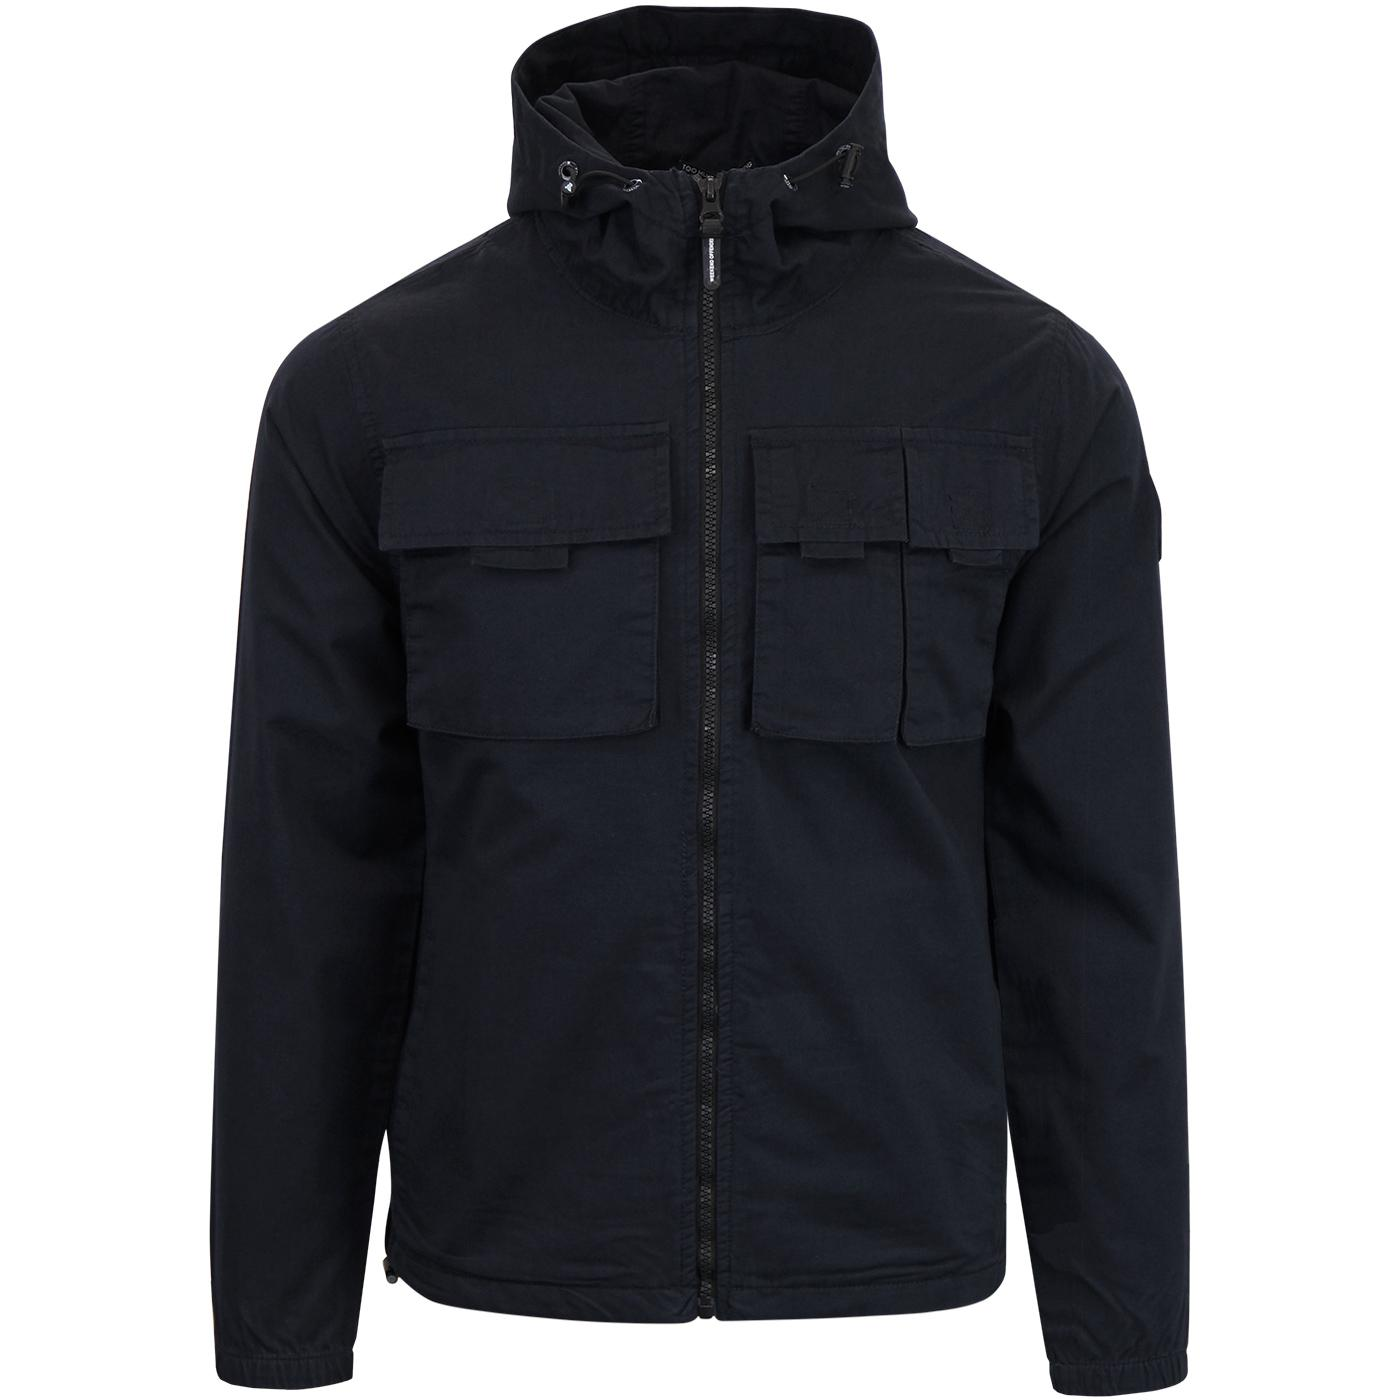 Cardillo WEEKEND OFFENDER Retro Hooded Jacket NAVY